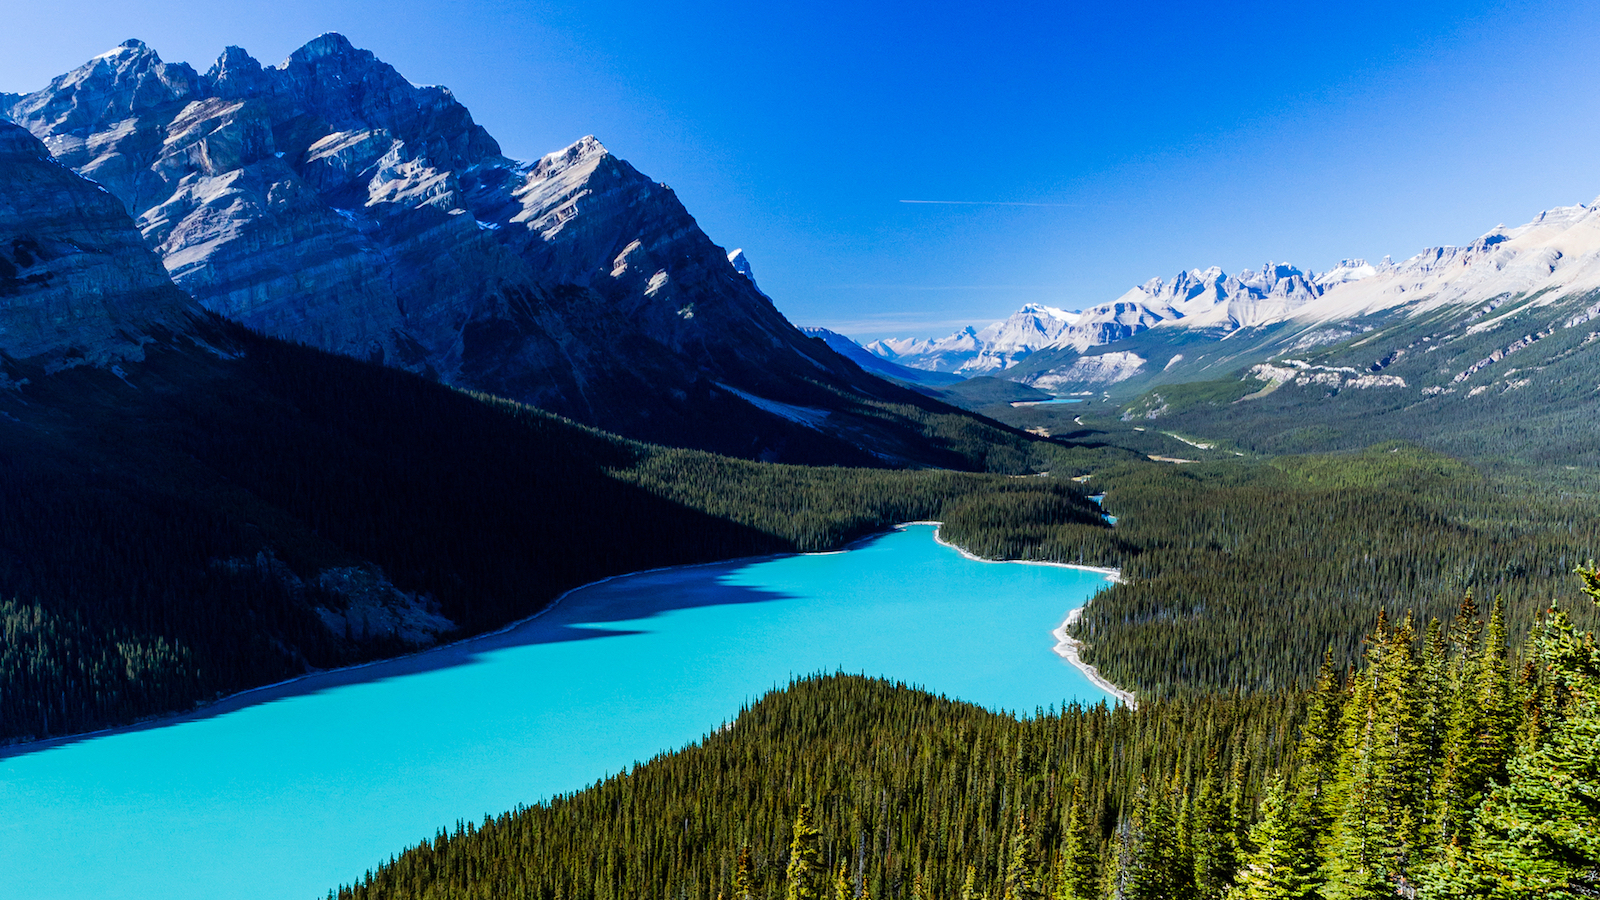 Best Car Wallpaper Download Icefields Parkway Driving Tour App Gypsy Guide